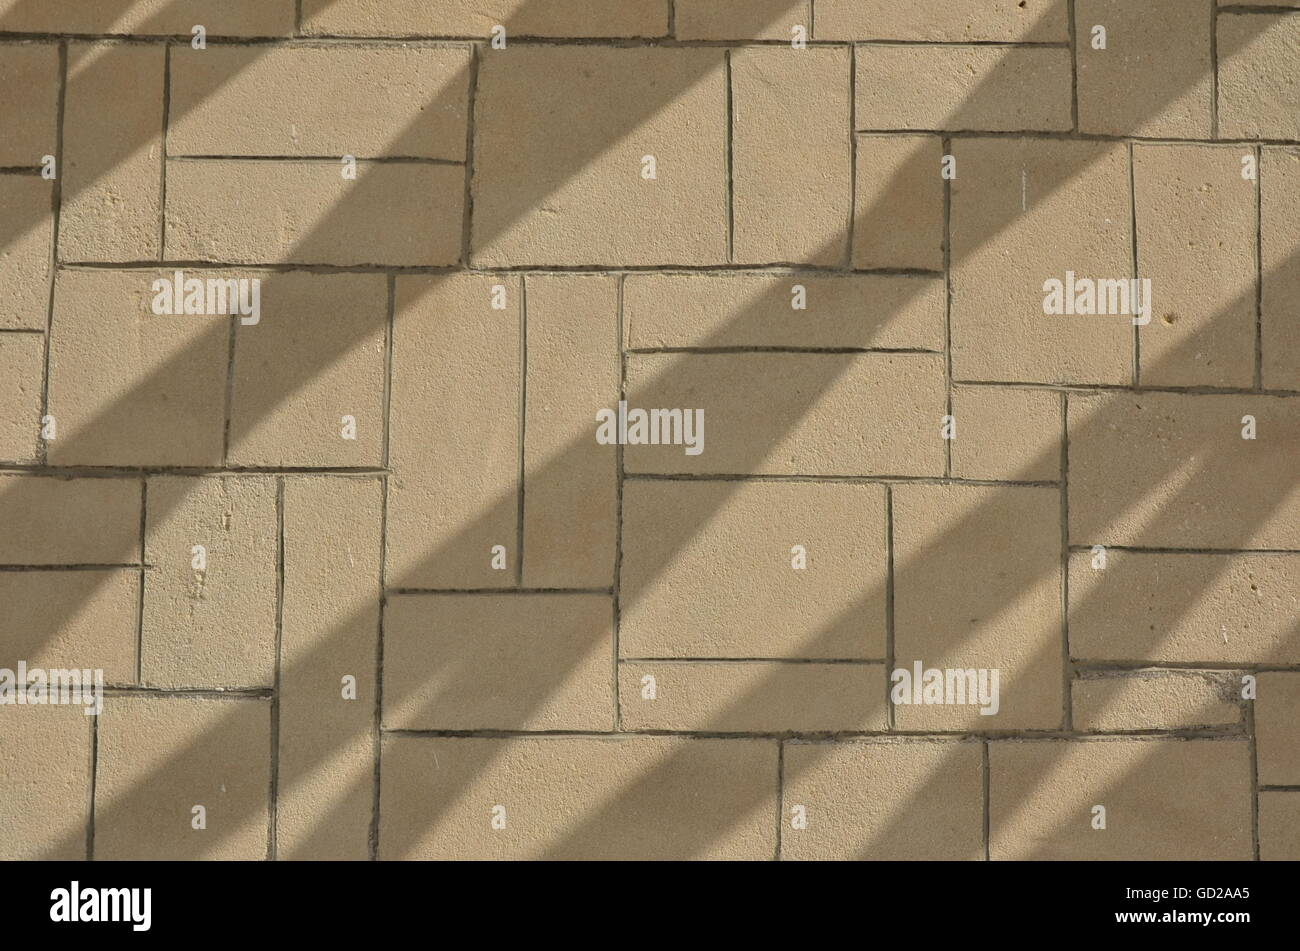 Red, Brick, floor, shadow pattern, texture, wall, background - Stock Image